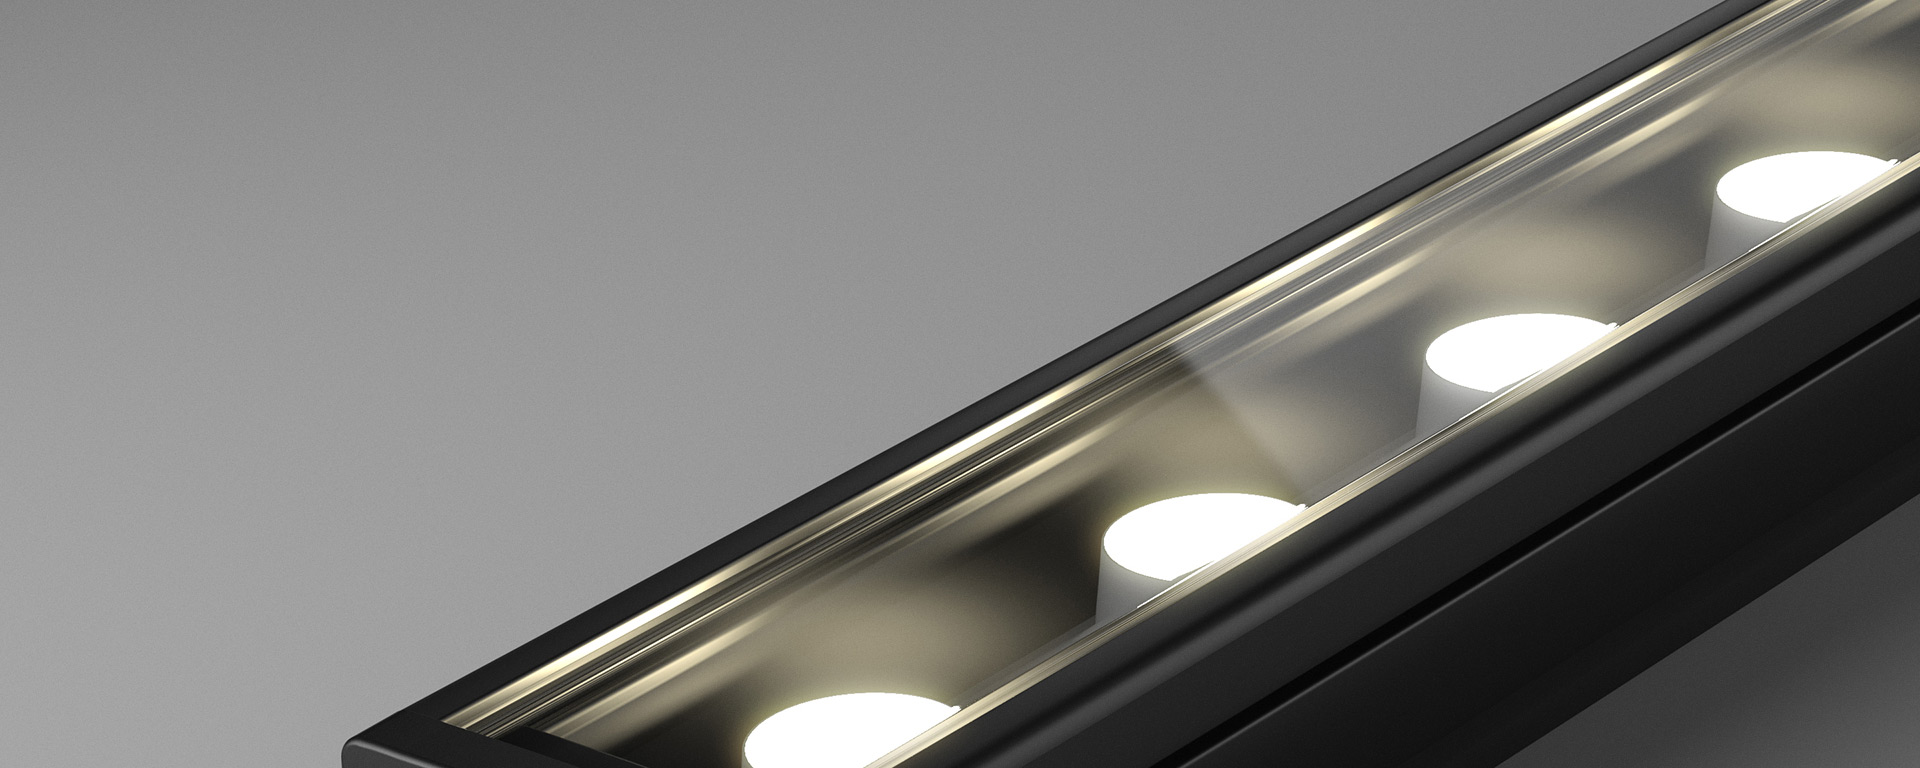 Max Mini TW IP utilises Coolon's encapsulation technology and signature build quality to deliver an outdoor luminaire that's uniquely resilient. IP66, IK08, shock and abrasion resistance and thermal protection